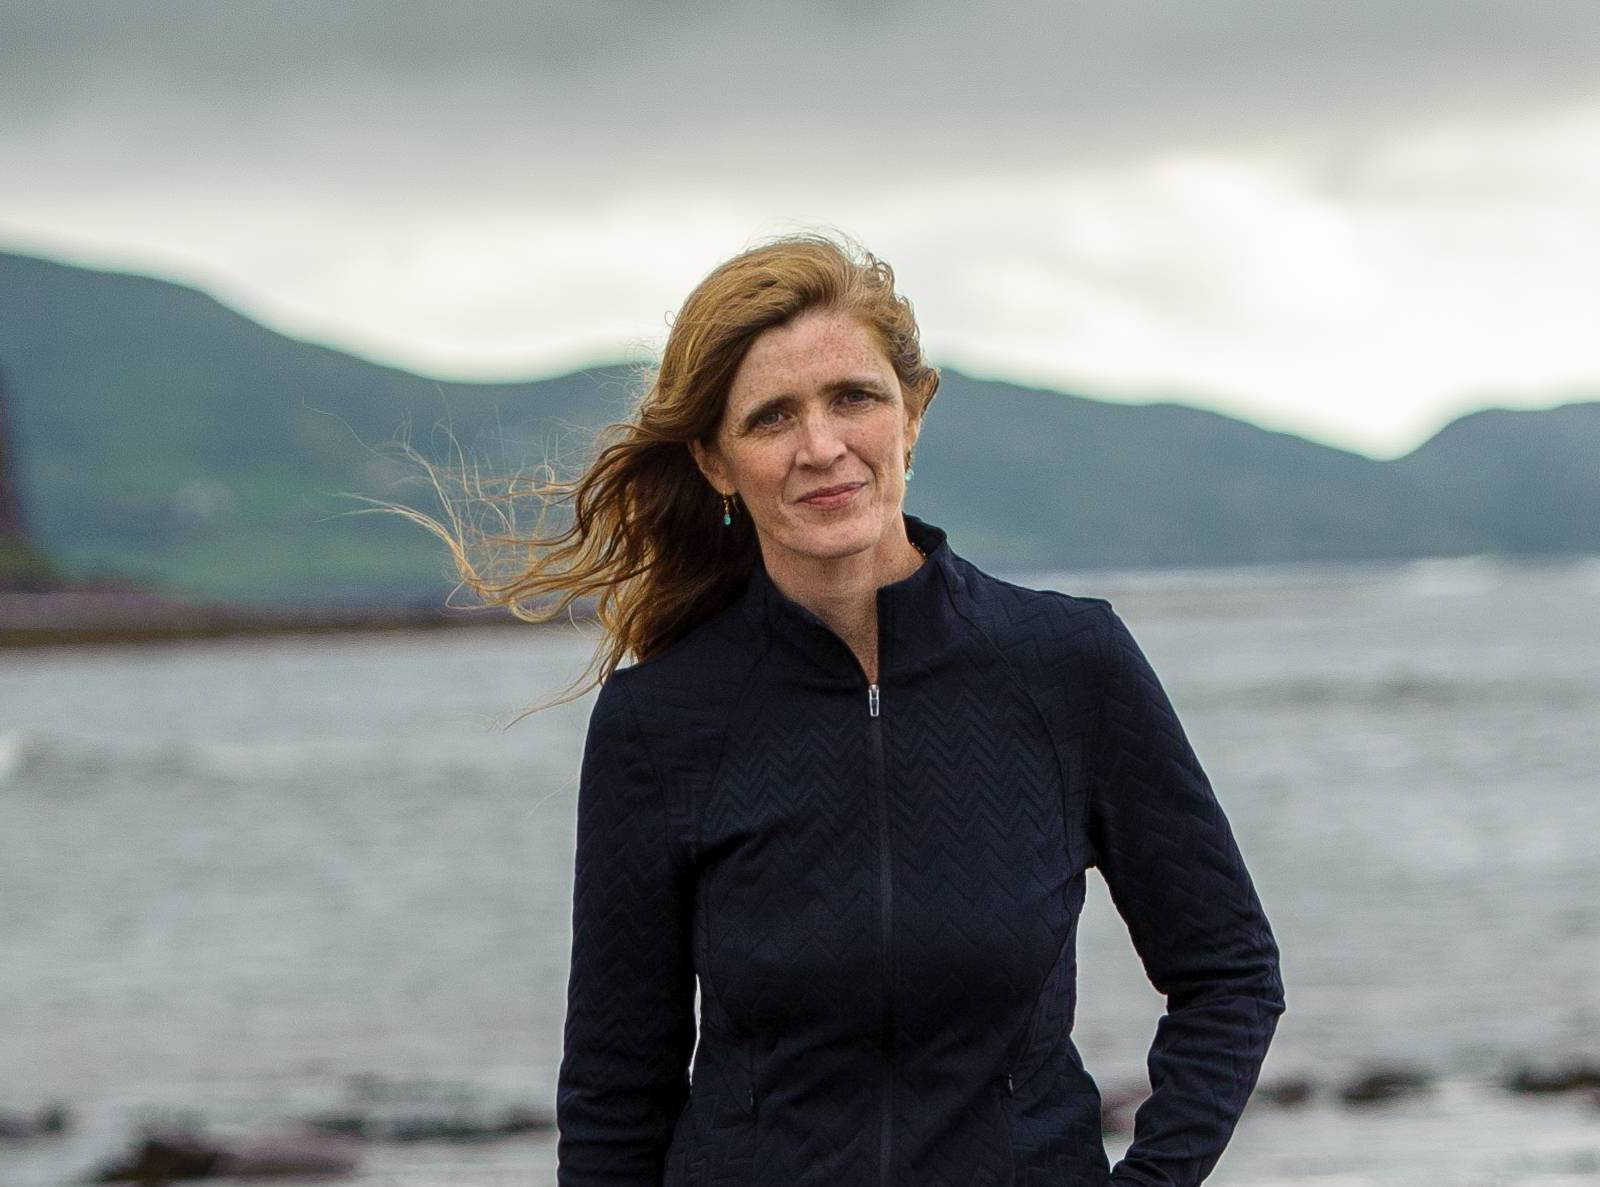 Ambassador Samantha Power, water and mountains in backdrop